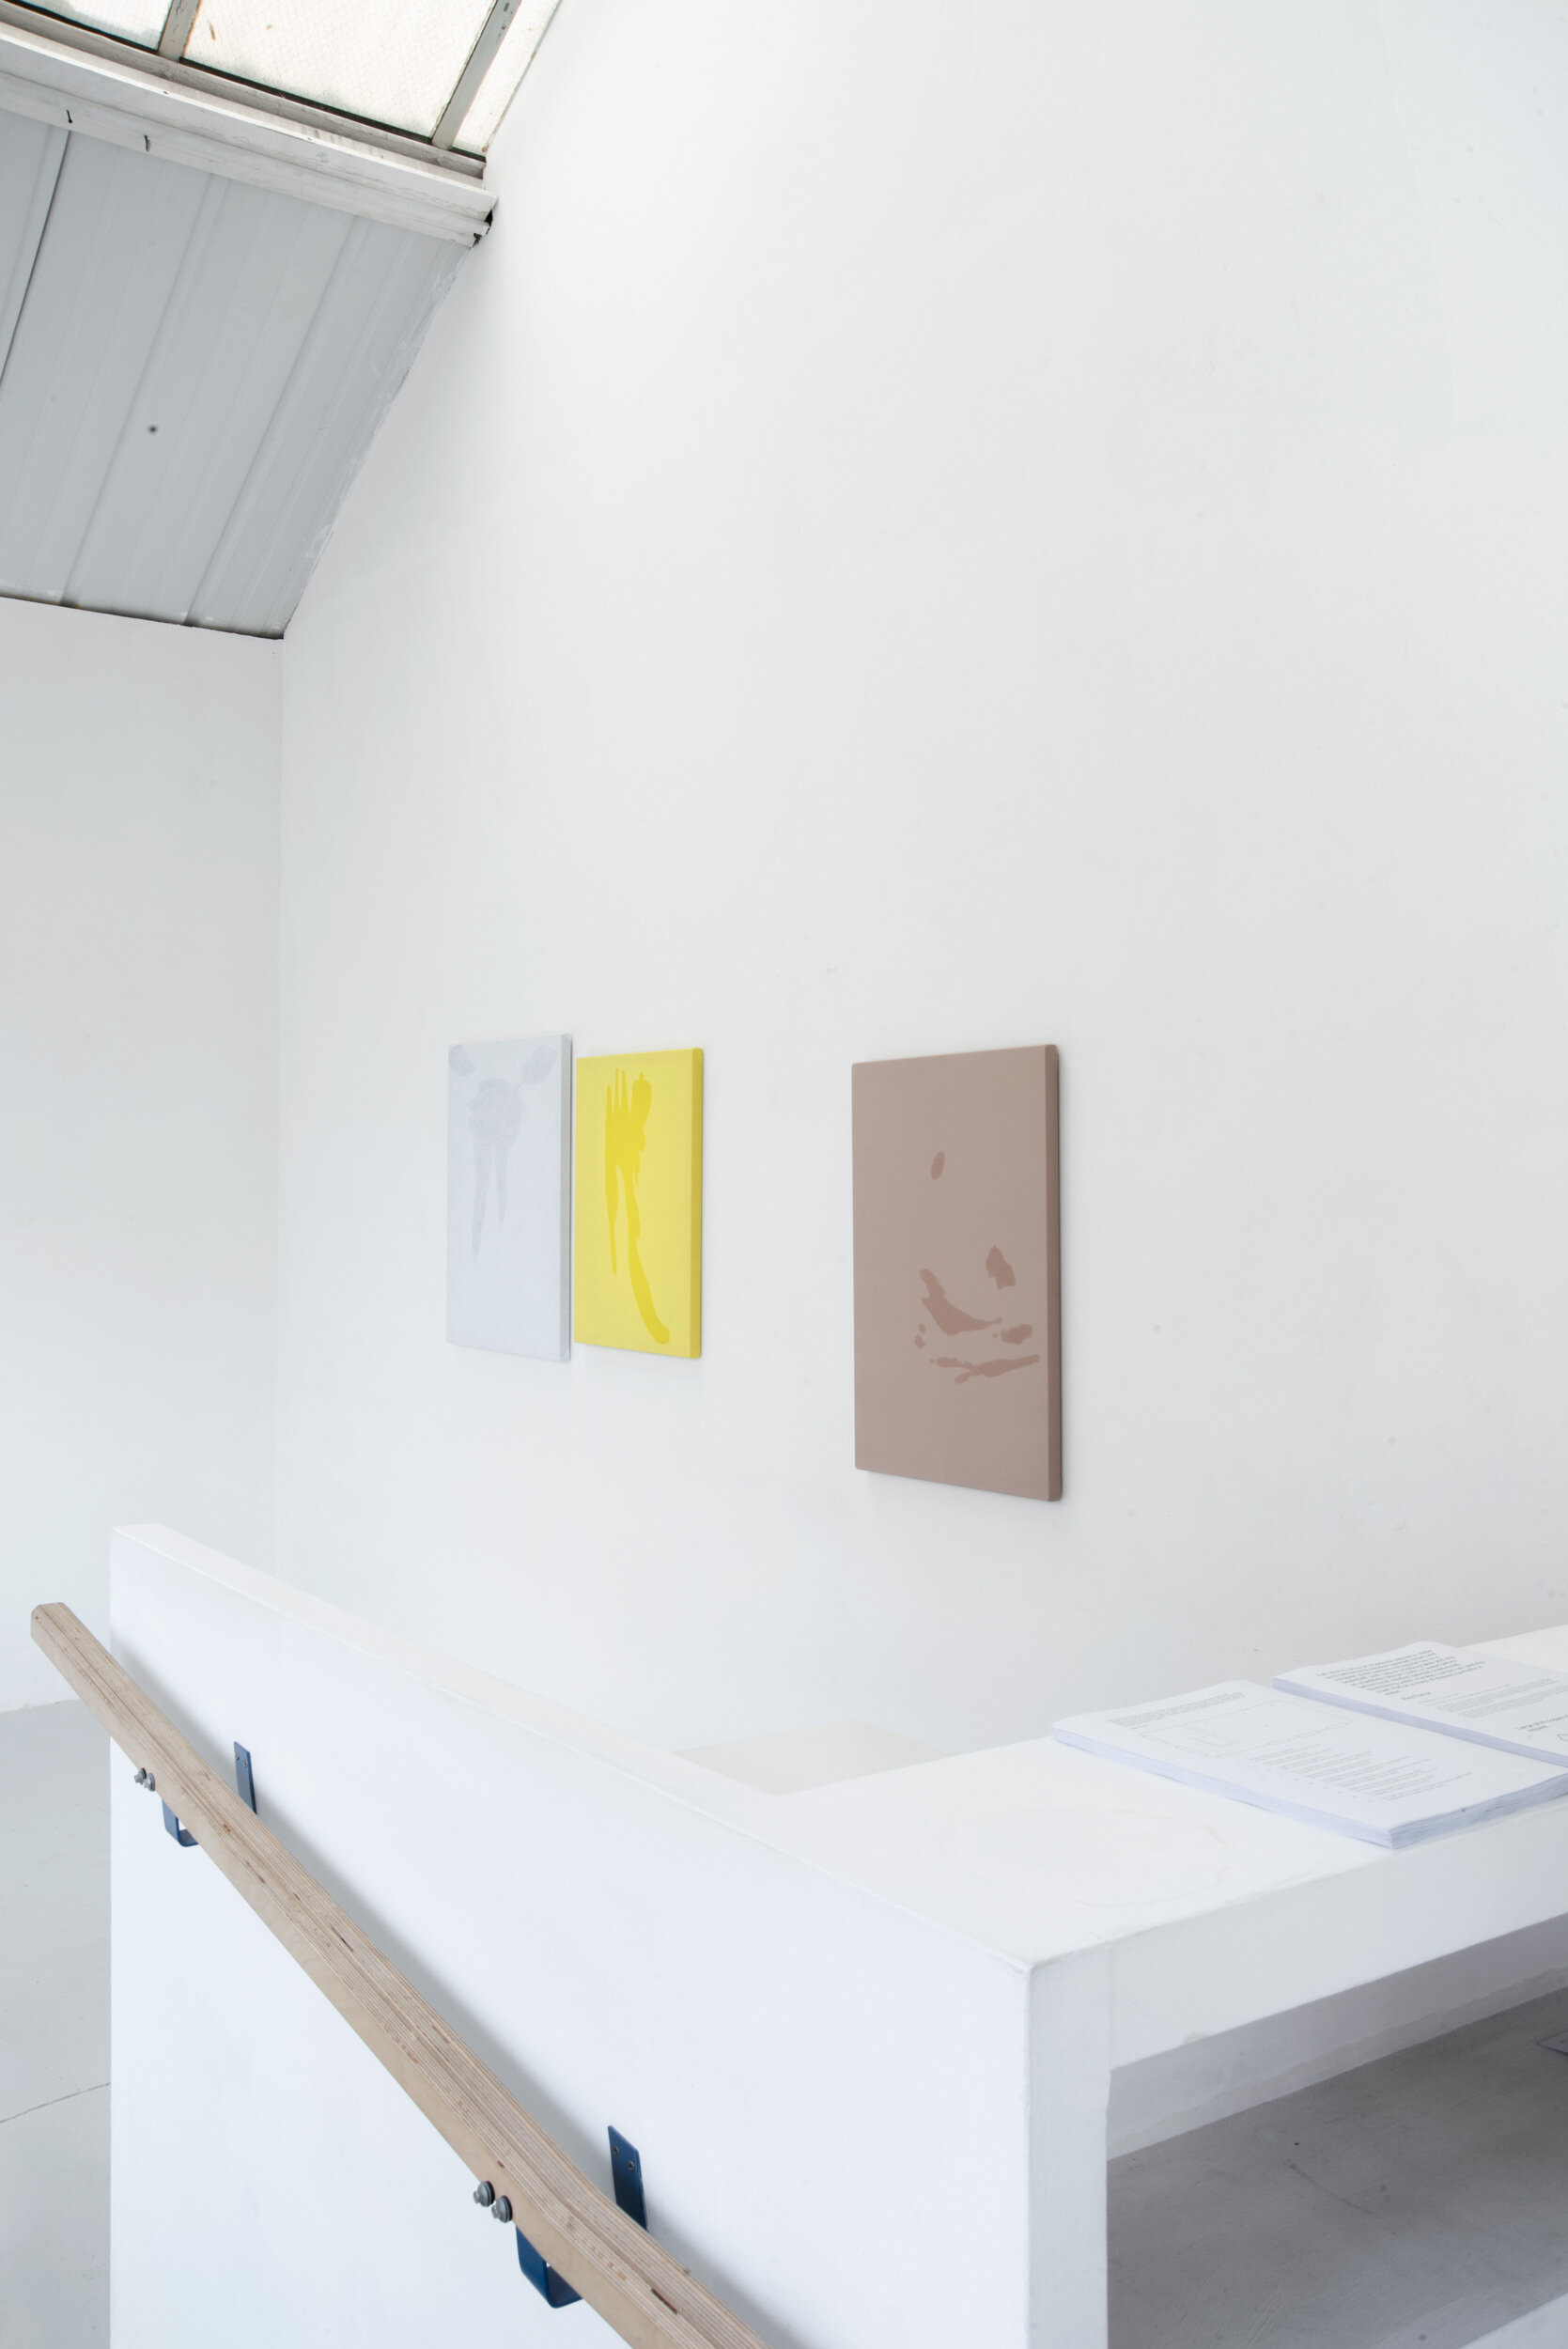 Broke (sweat painting), Infra (sweat painting) and Careful (sweat painting), Installation View, Alex Farrar, Bloc Projects, 2019.jpg